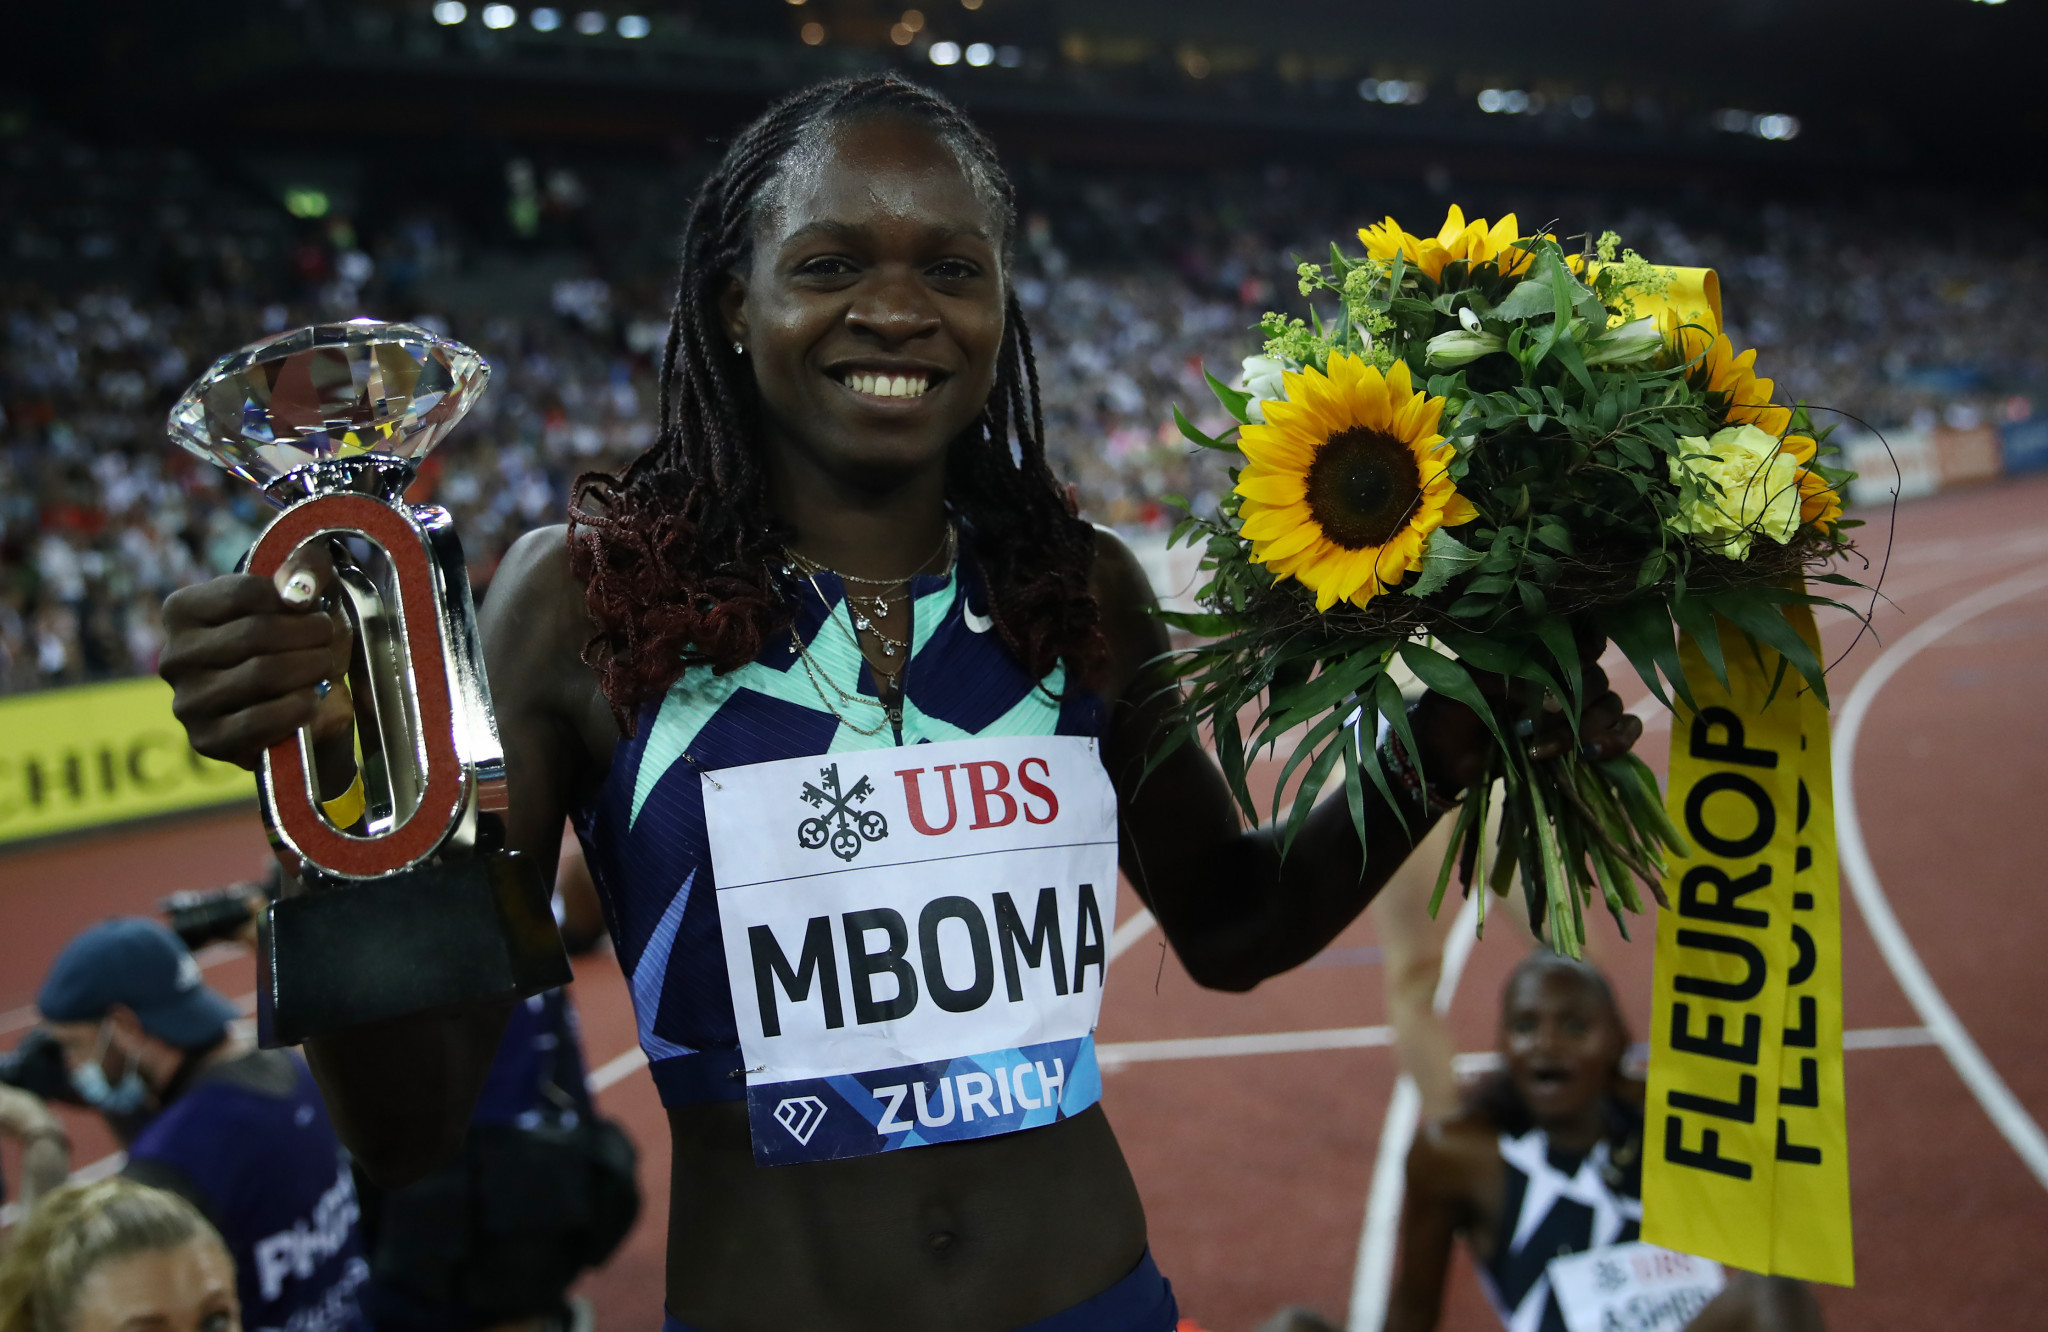 Christine Mboma's brilliant 2021 continued as the teenager set an African 200m record ©Getty Images